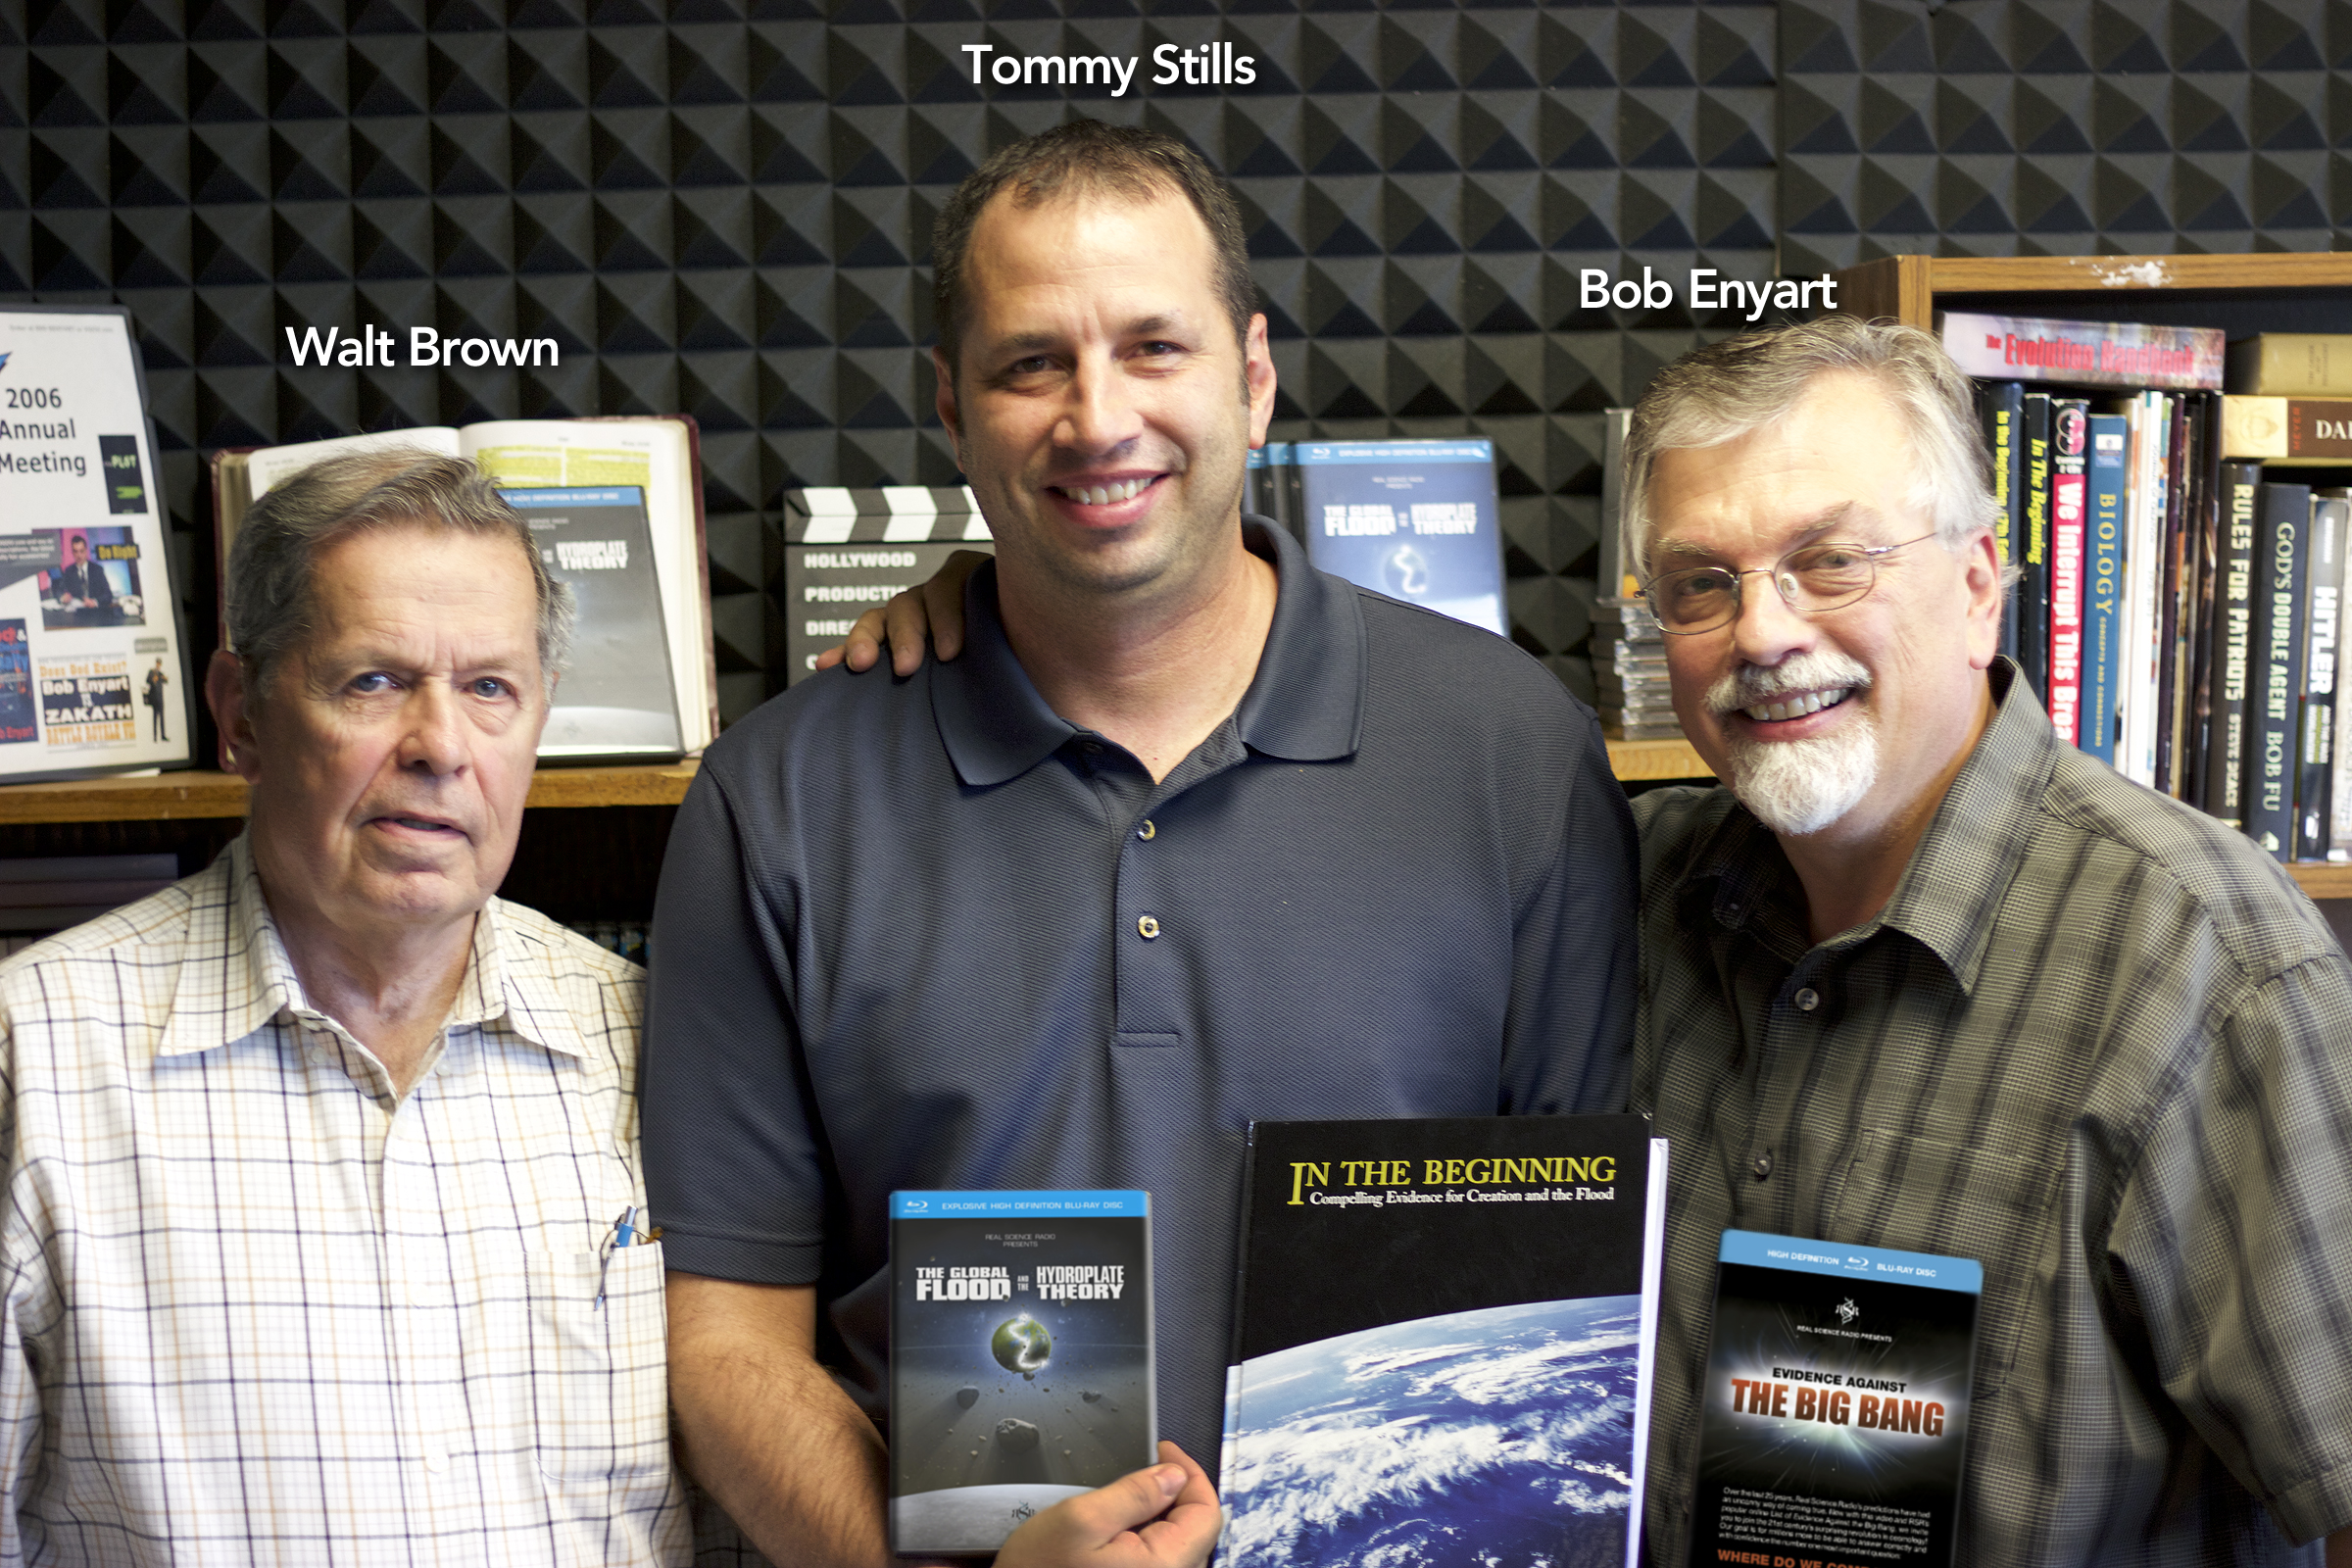 Walt Brown, editor of RSR's Hydroplate Theory video Tommy Stills, Bob Enyart